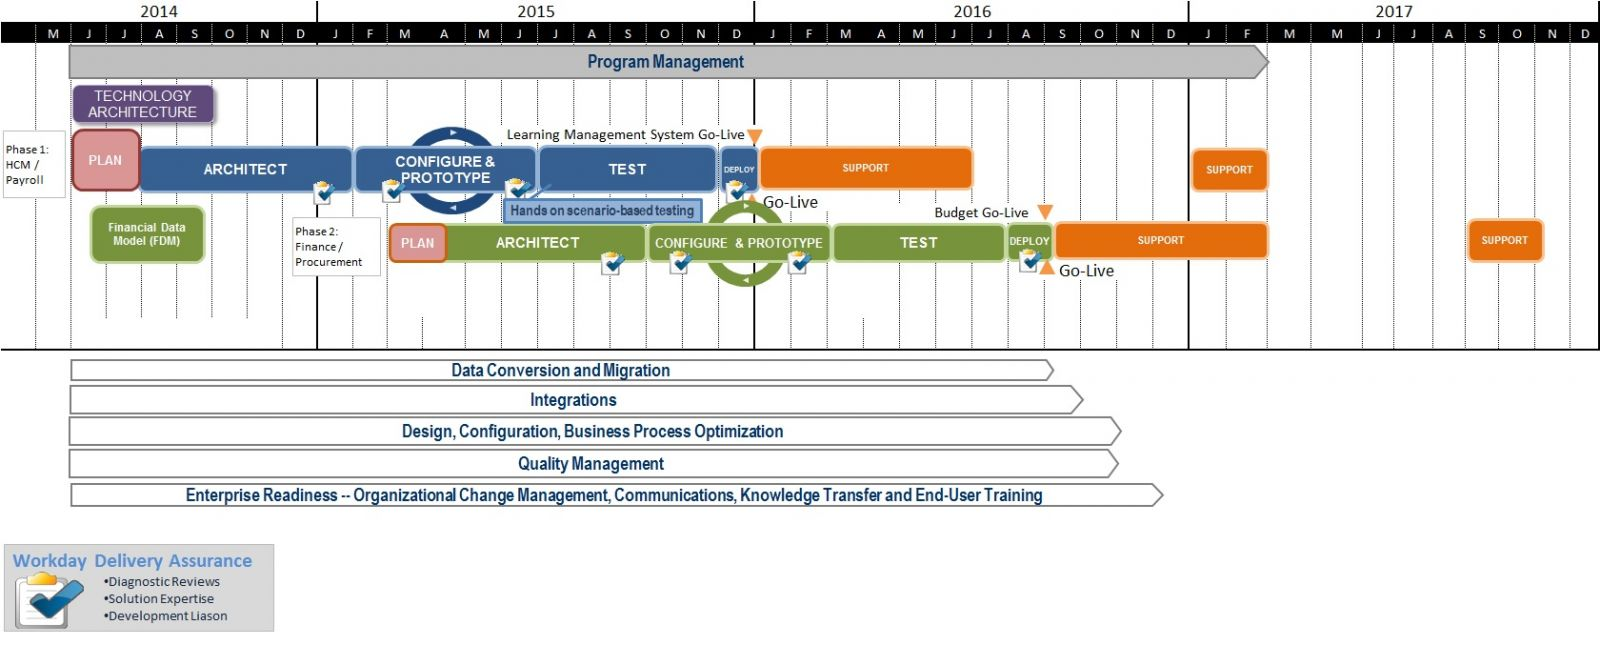 Workday-Implementation-Timeline